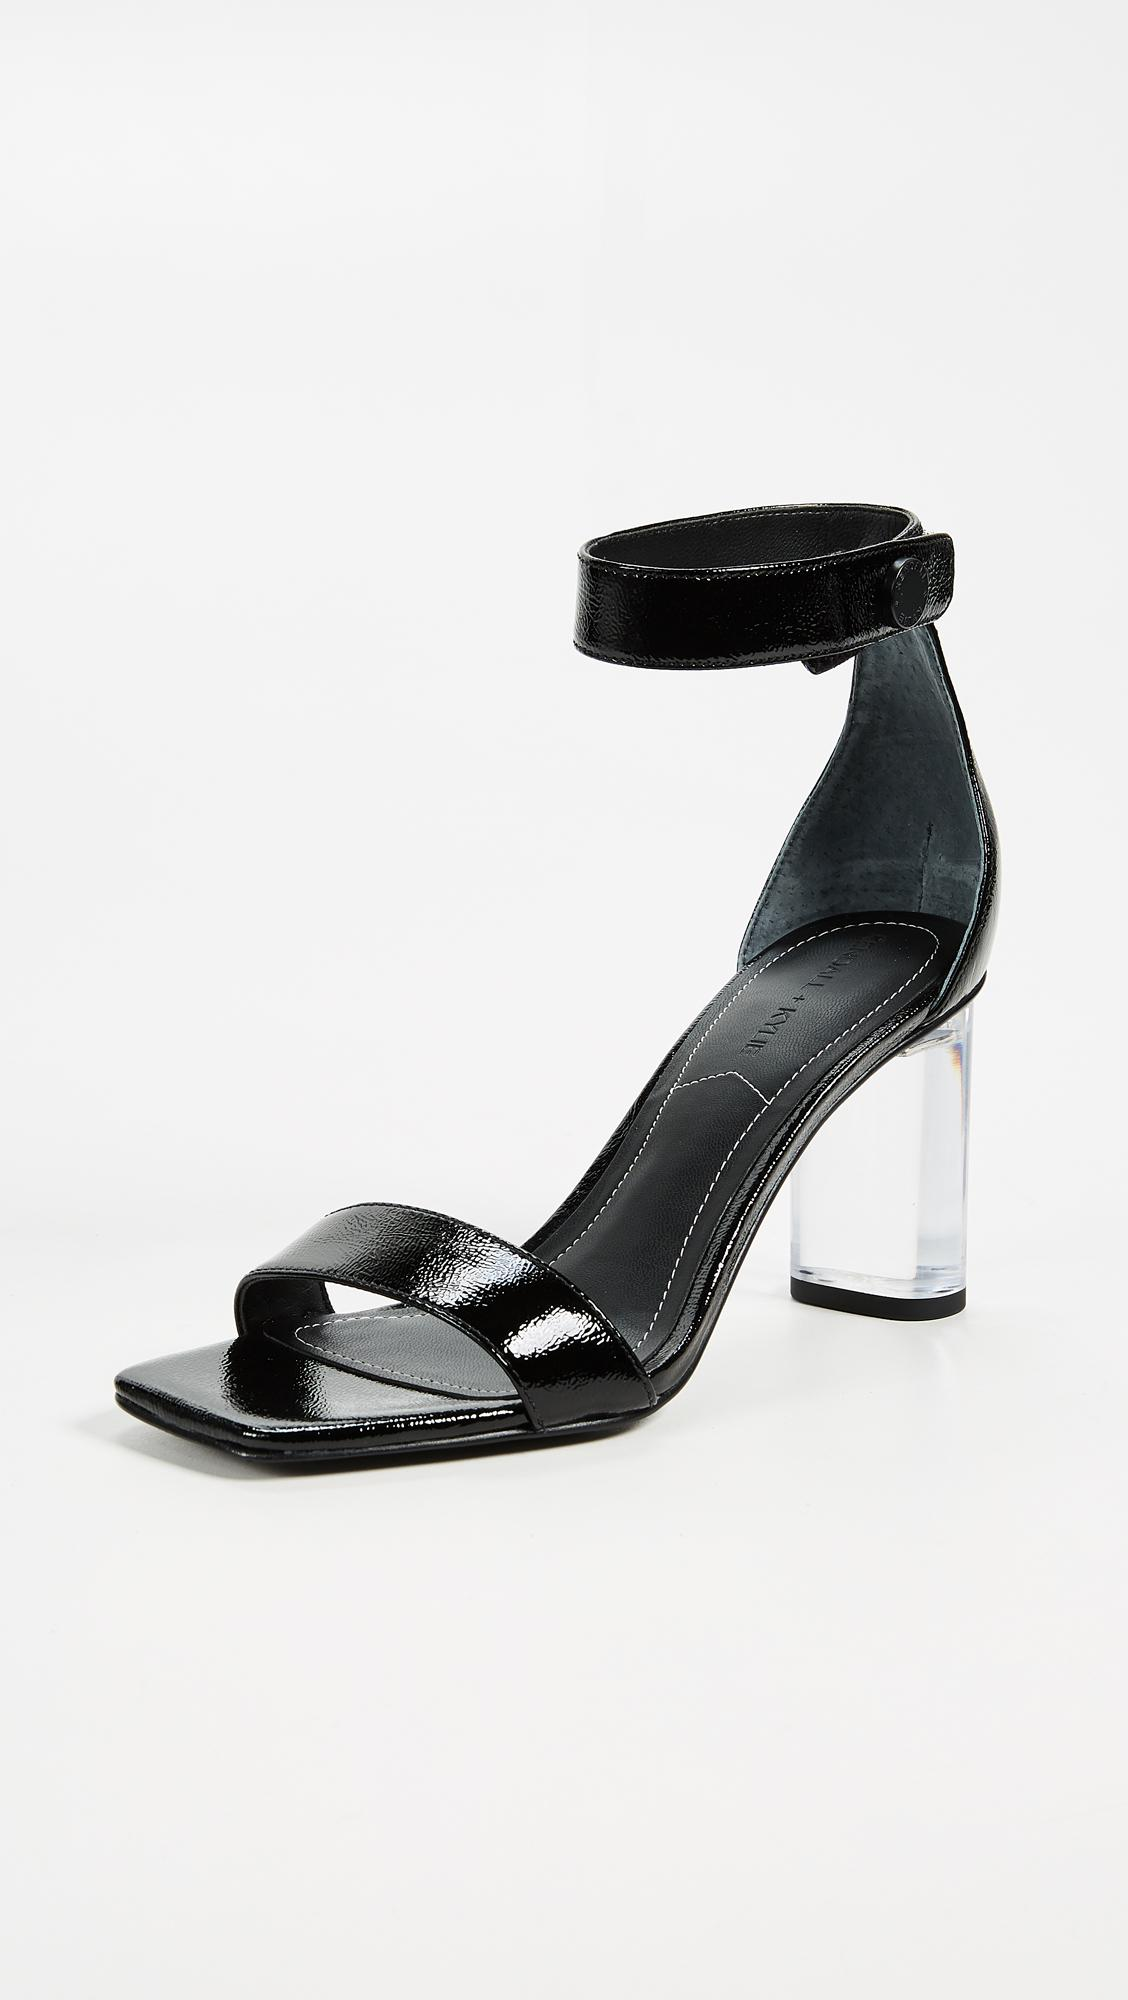 KENDALL + KYLIE Women's Lexx Ankle Strap Sandal